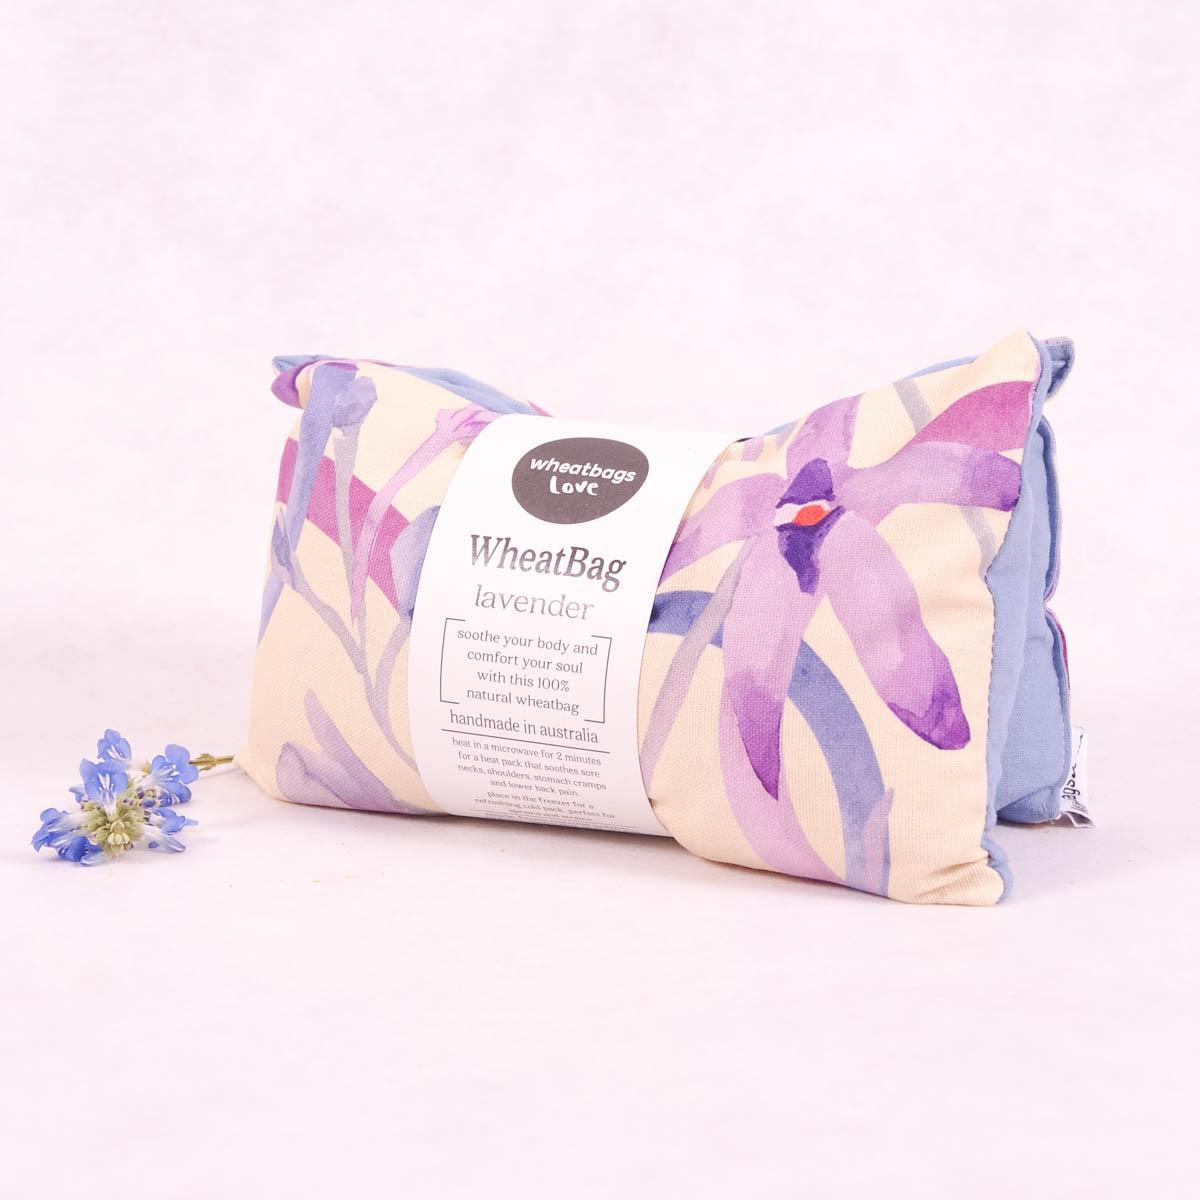 Wheatbags Love Heat Pack - Bush Orchid - Heat Pack - Throw Some Seeds - Australian gardening gifts and eco products online!